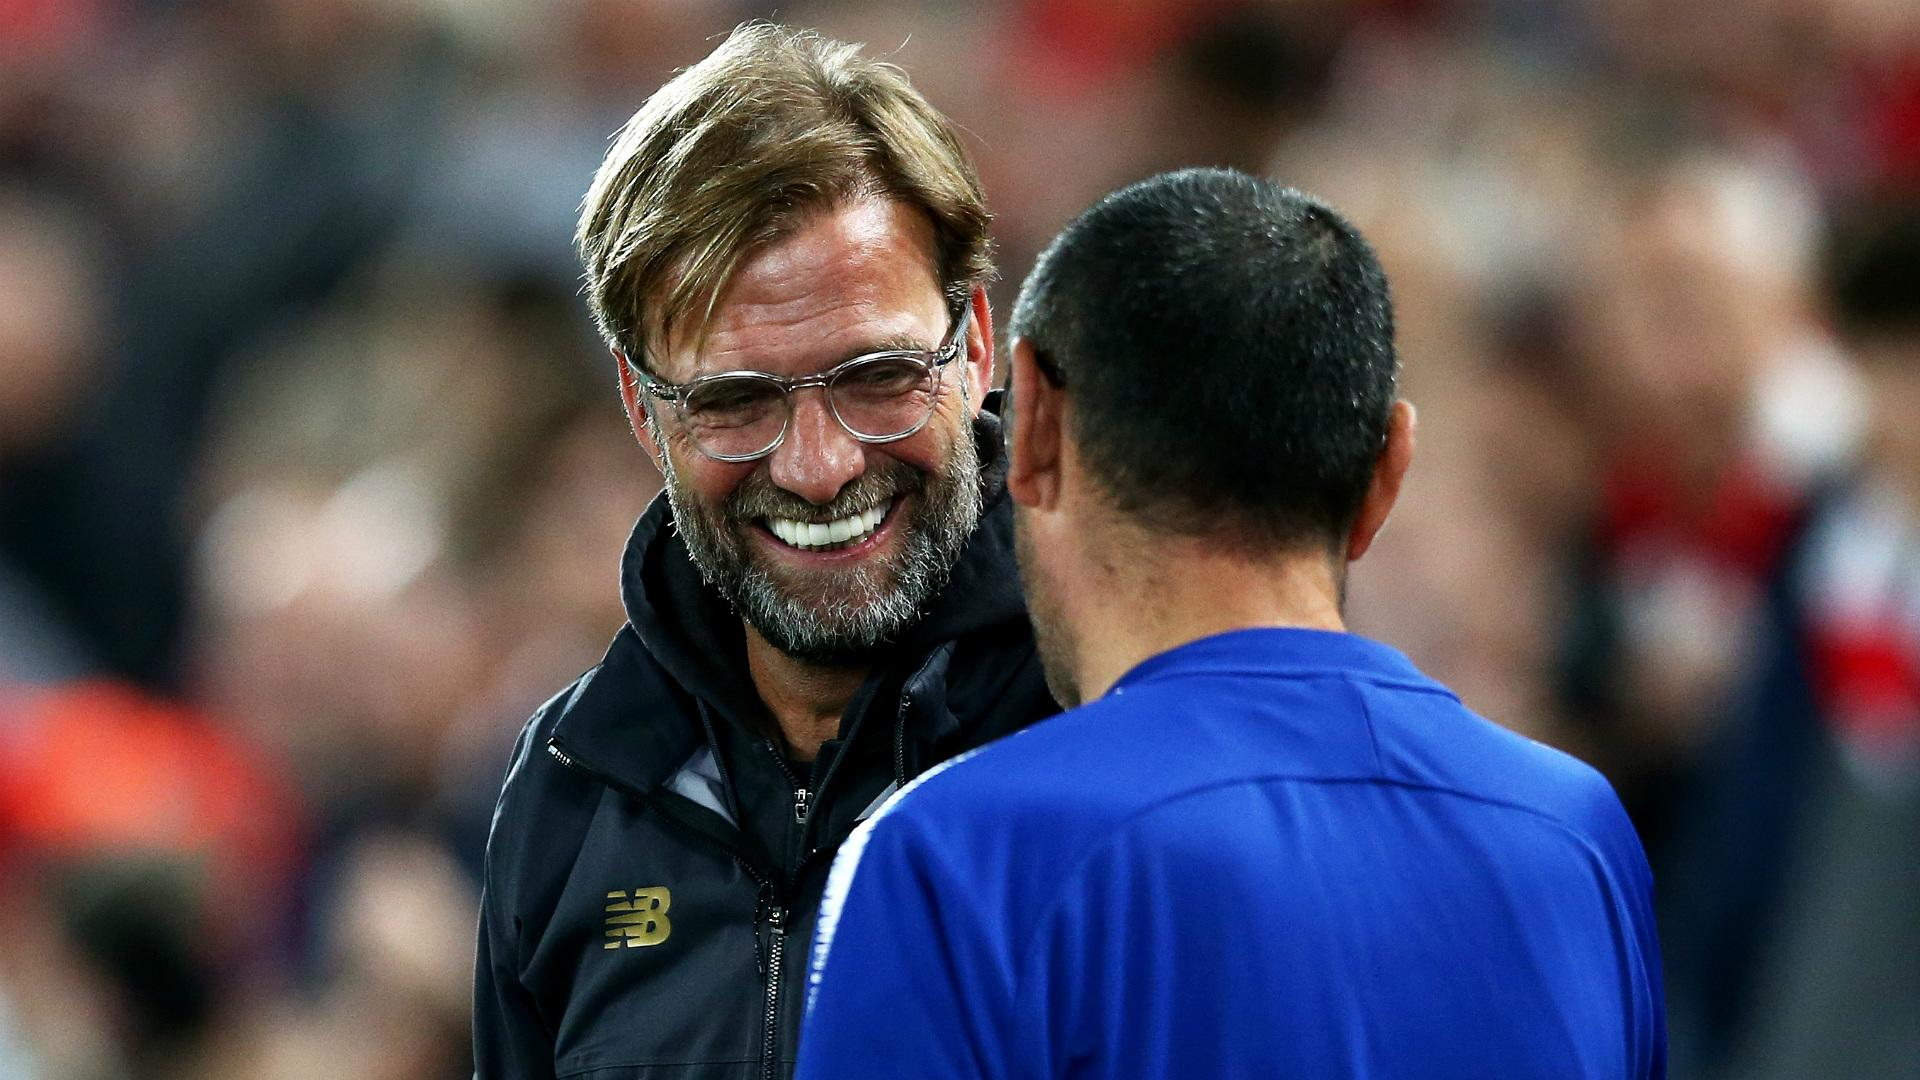 'Why are you smiling?' - Sarri reveals what he said to Klopp after Hazard's goal against Liverpool